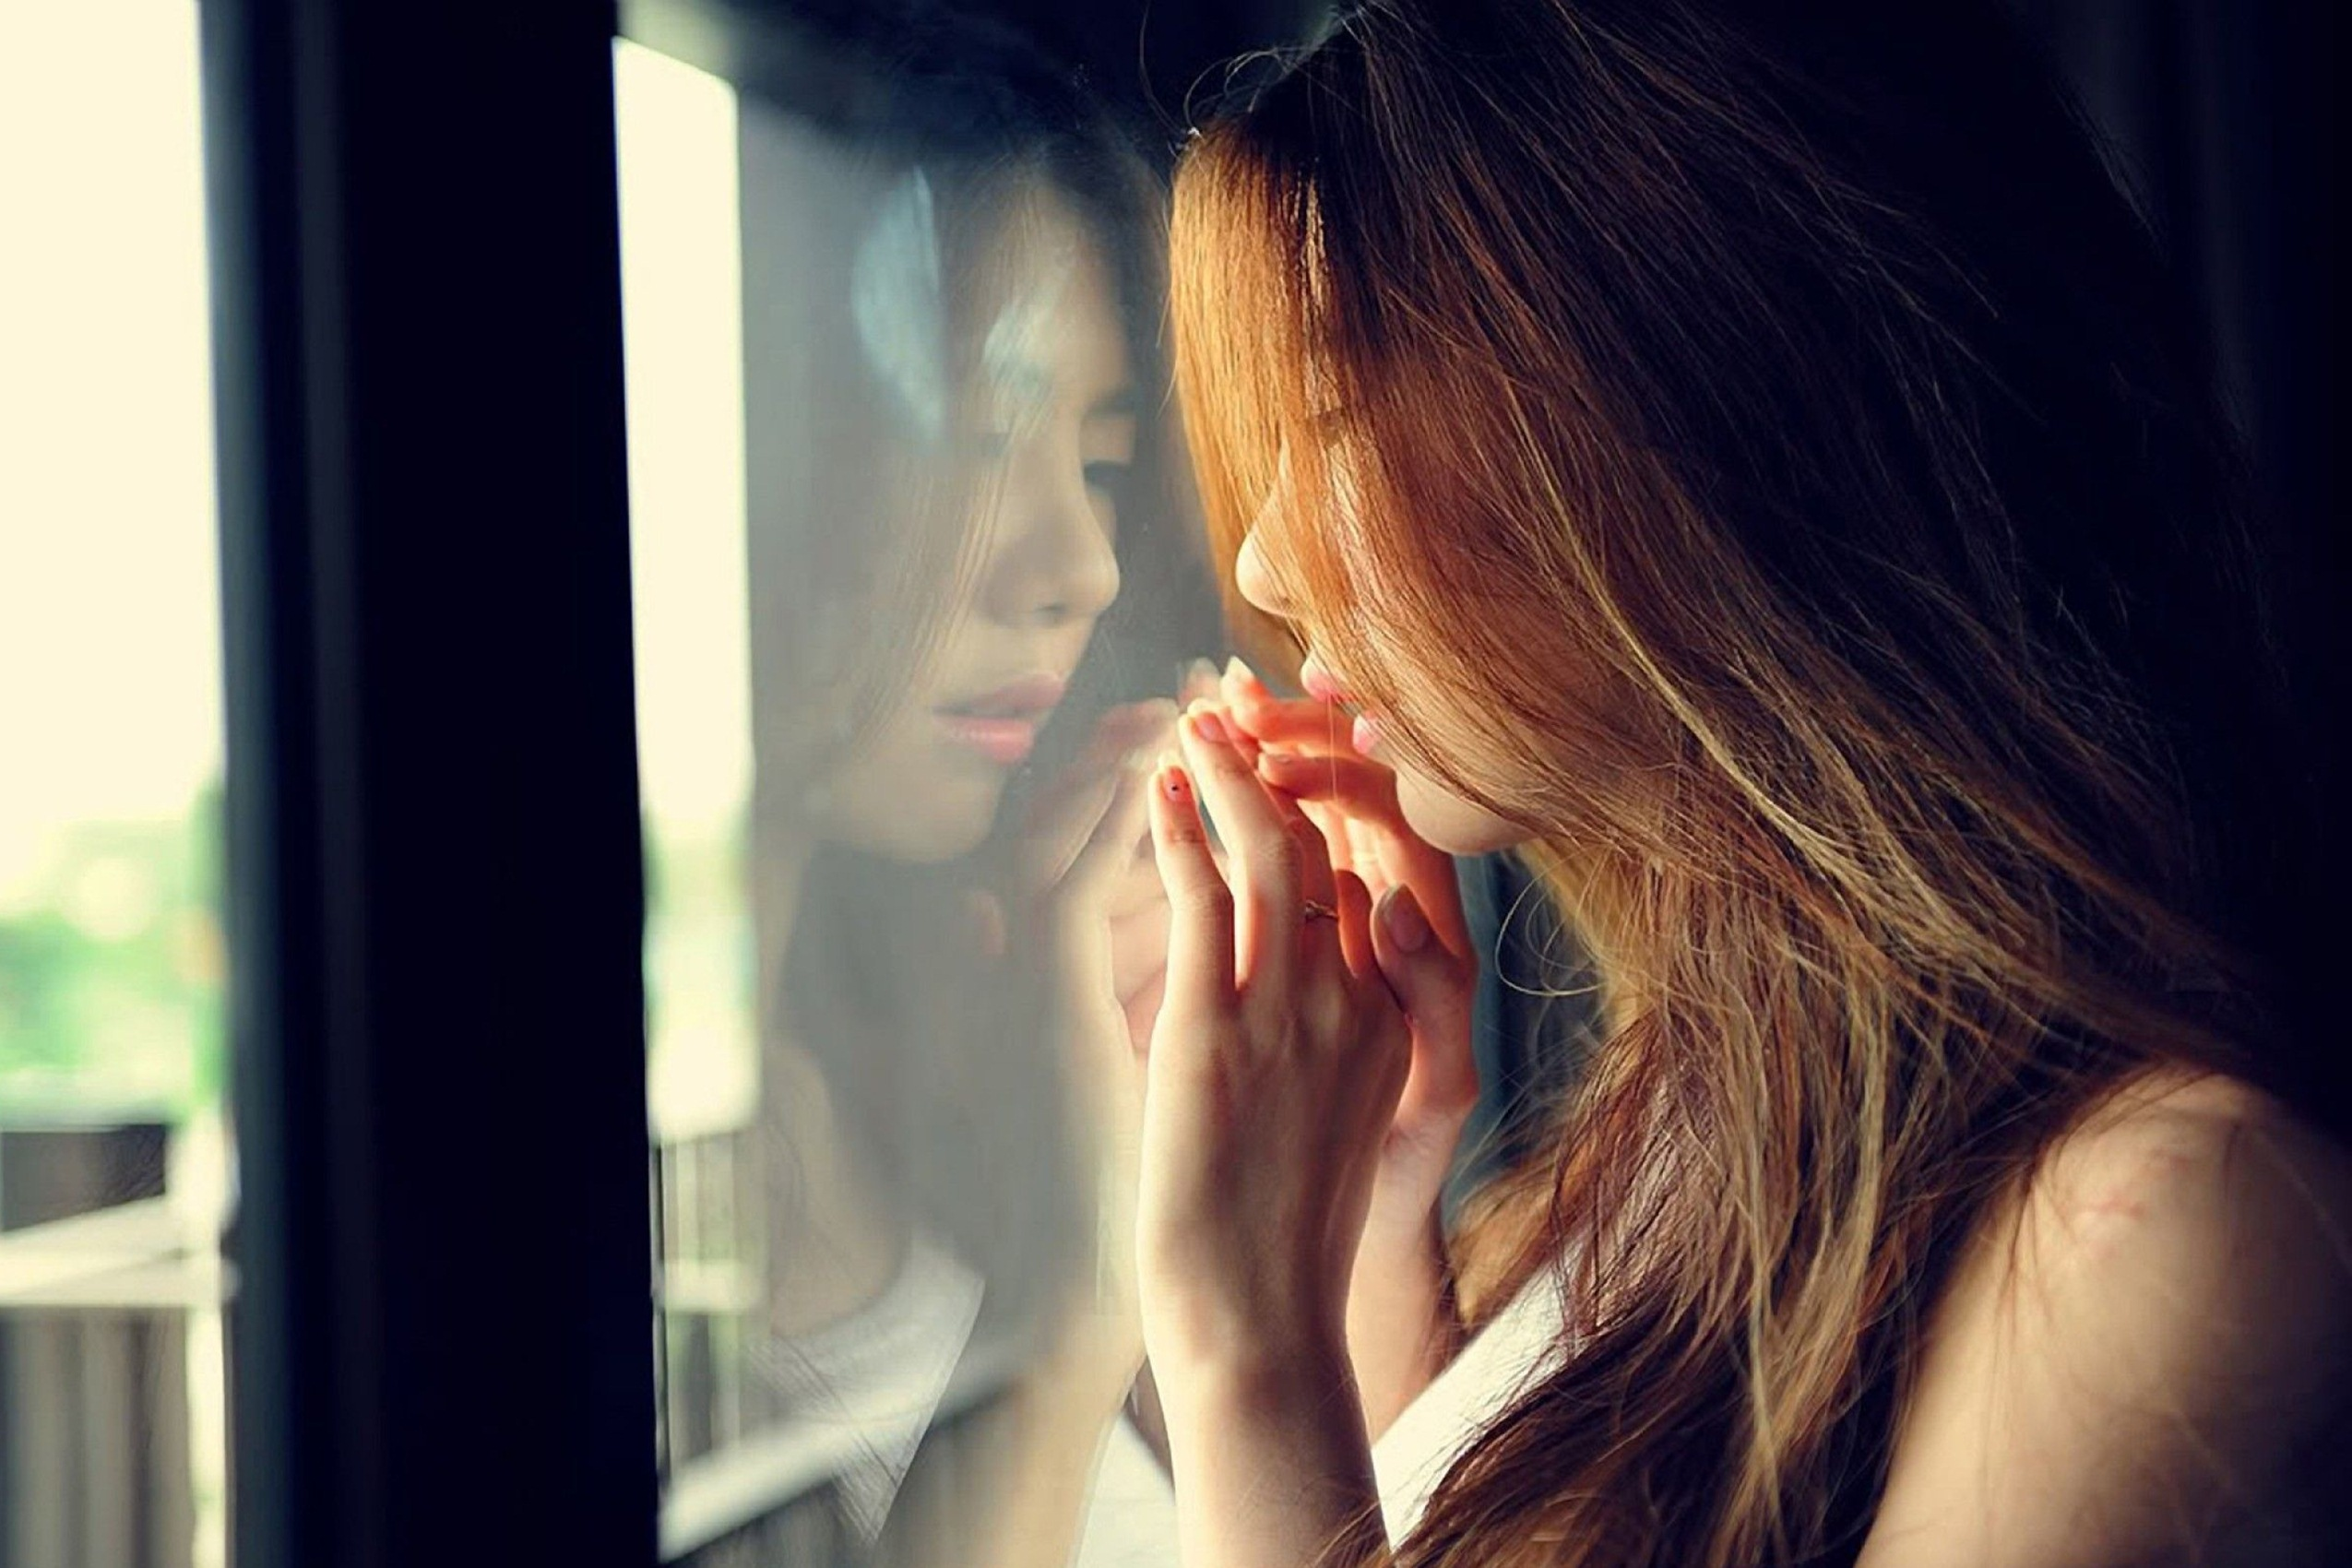 Alone Sad Girl Hd Wallpaper - Lonely Sad Girl Looking Out The Window - HD Wallpaper